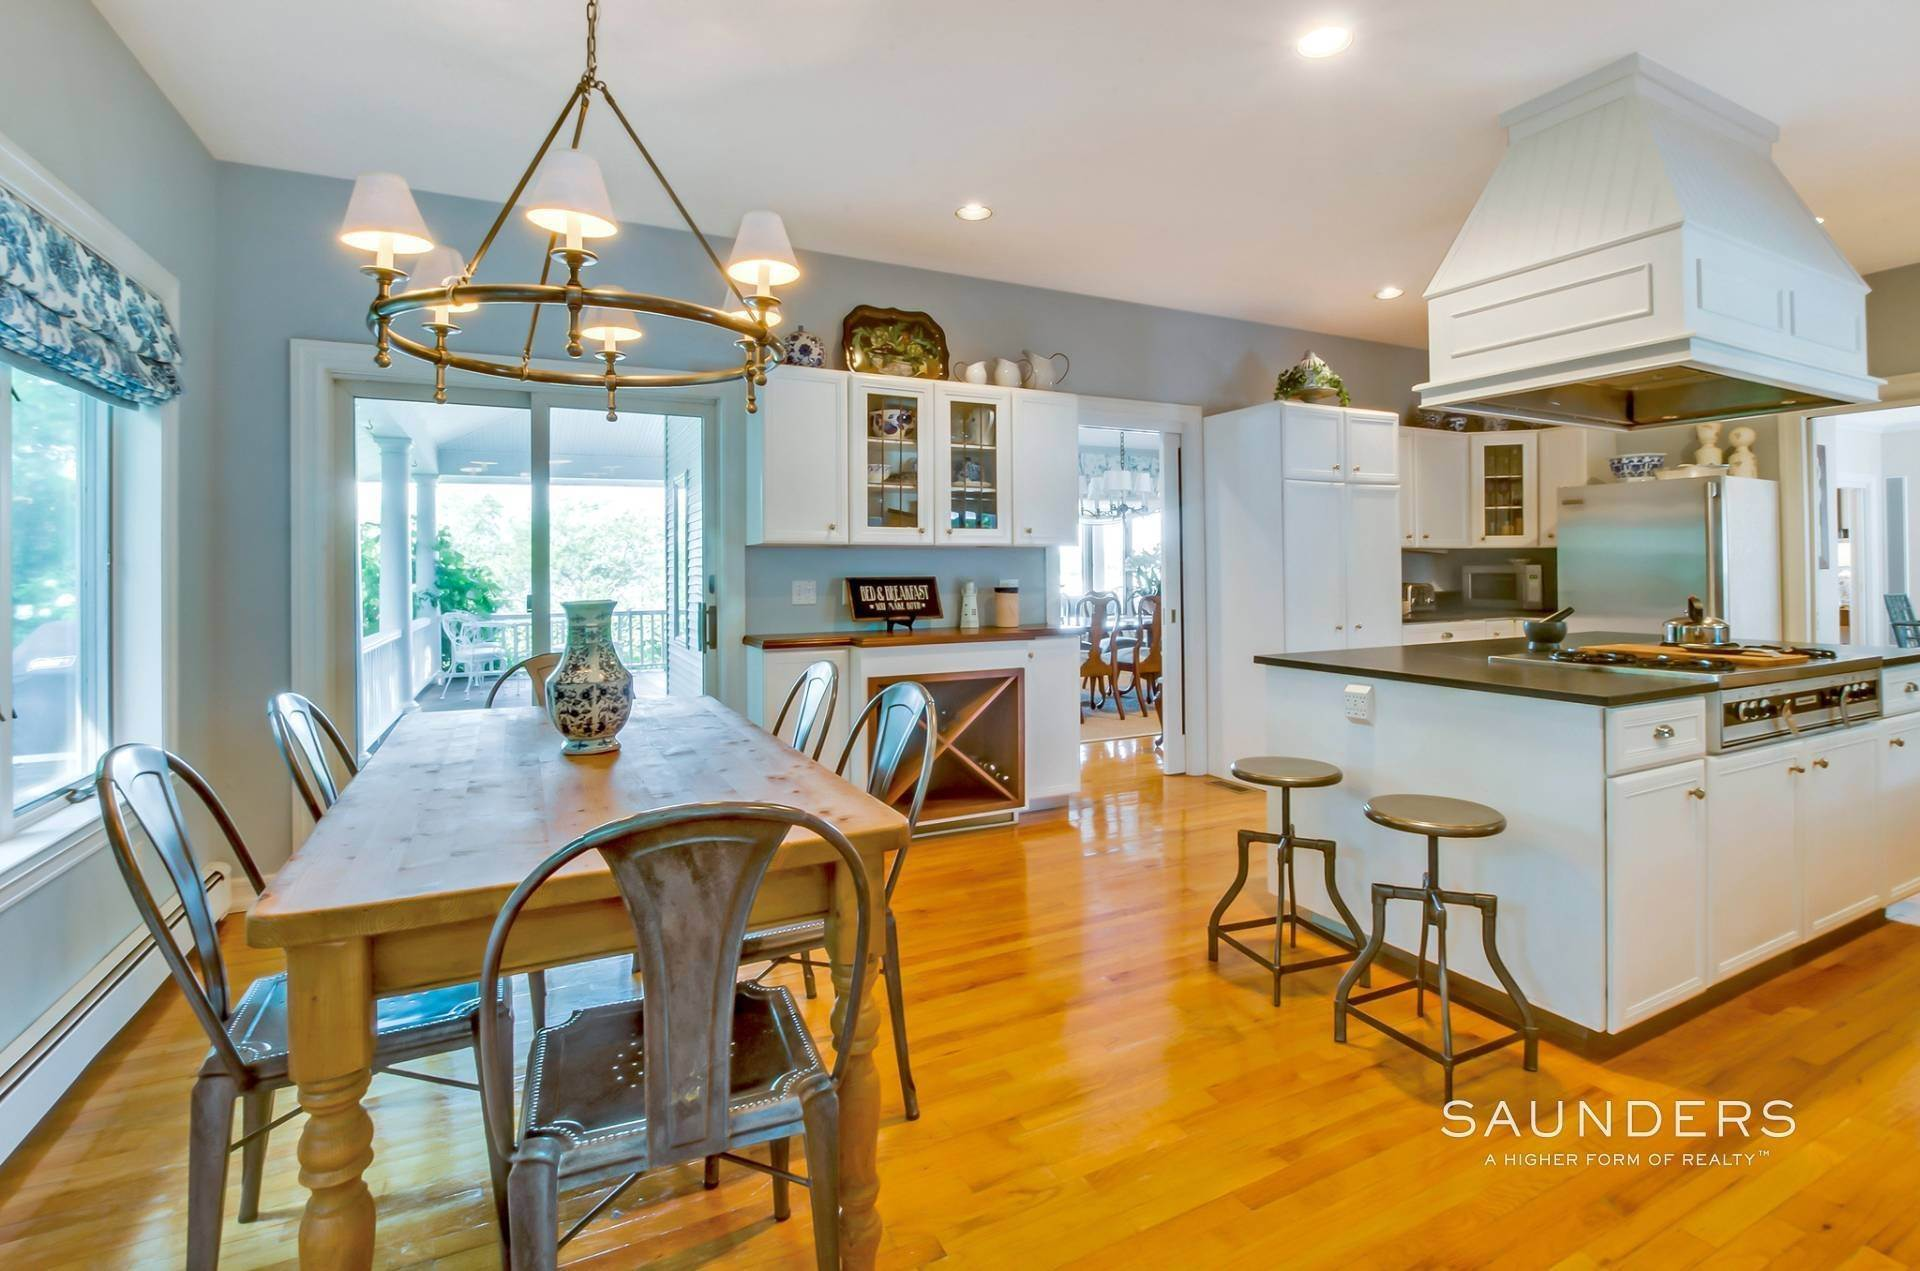 7. Single Family Homes for Sale at Estate Section Compound With Deep Water Dock, Sandy Beach, Pool 58 Westmoreland Drive, Shelter Island Heights, Shelter Island, NY 11964